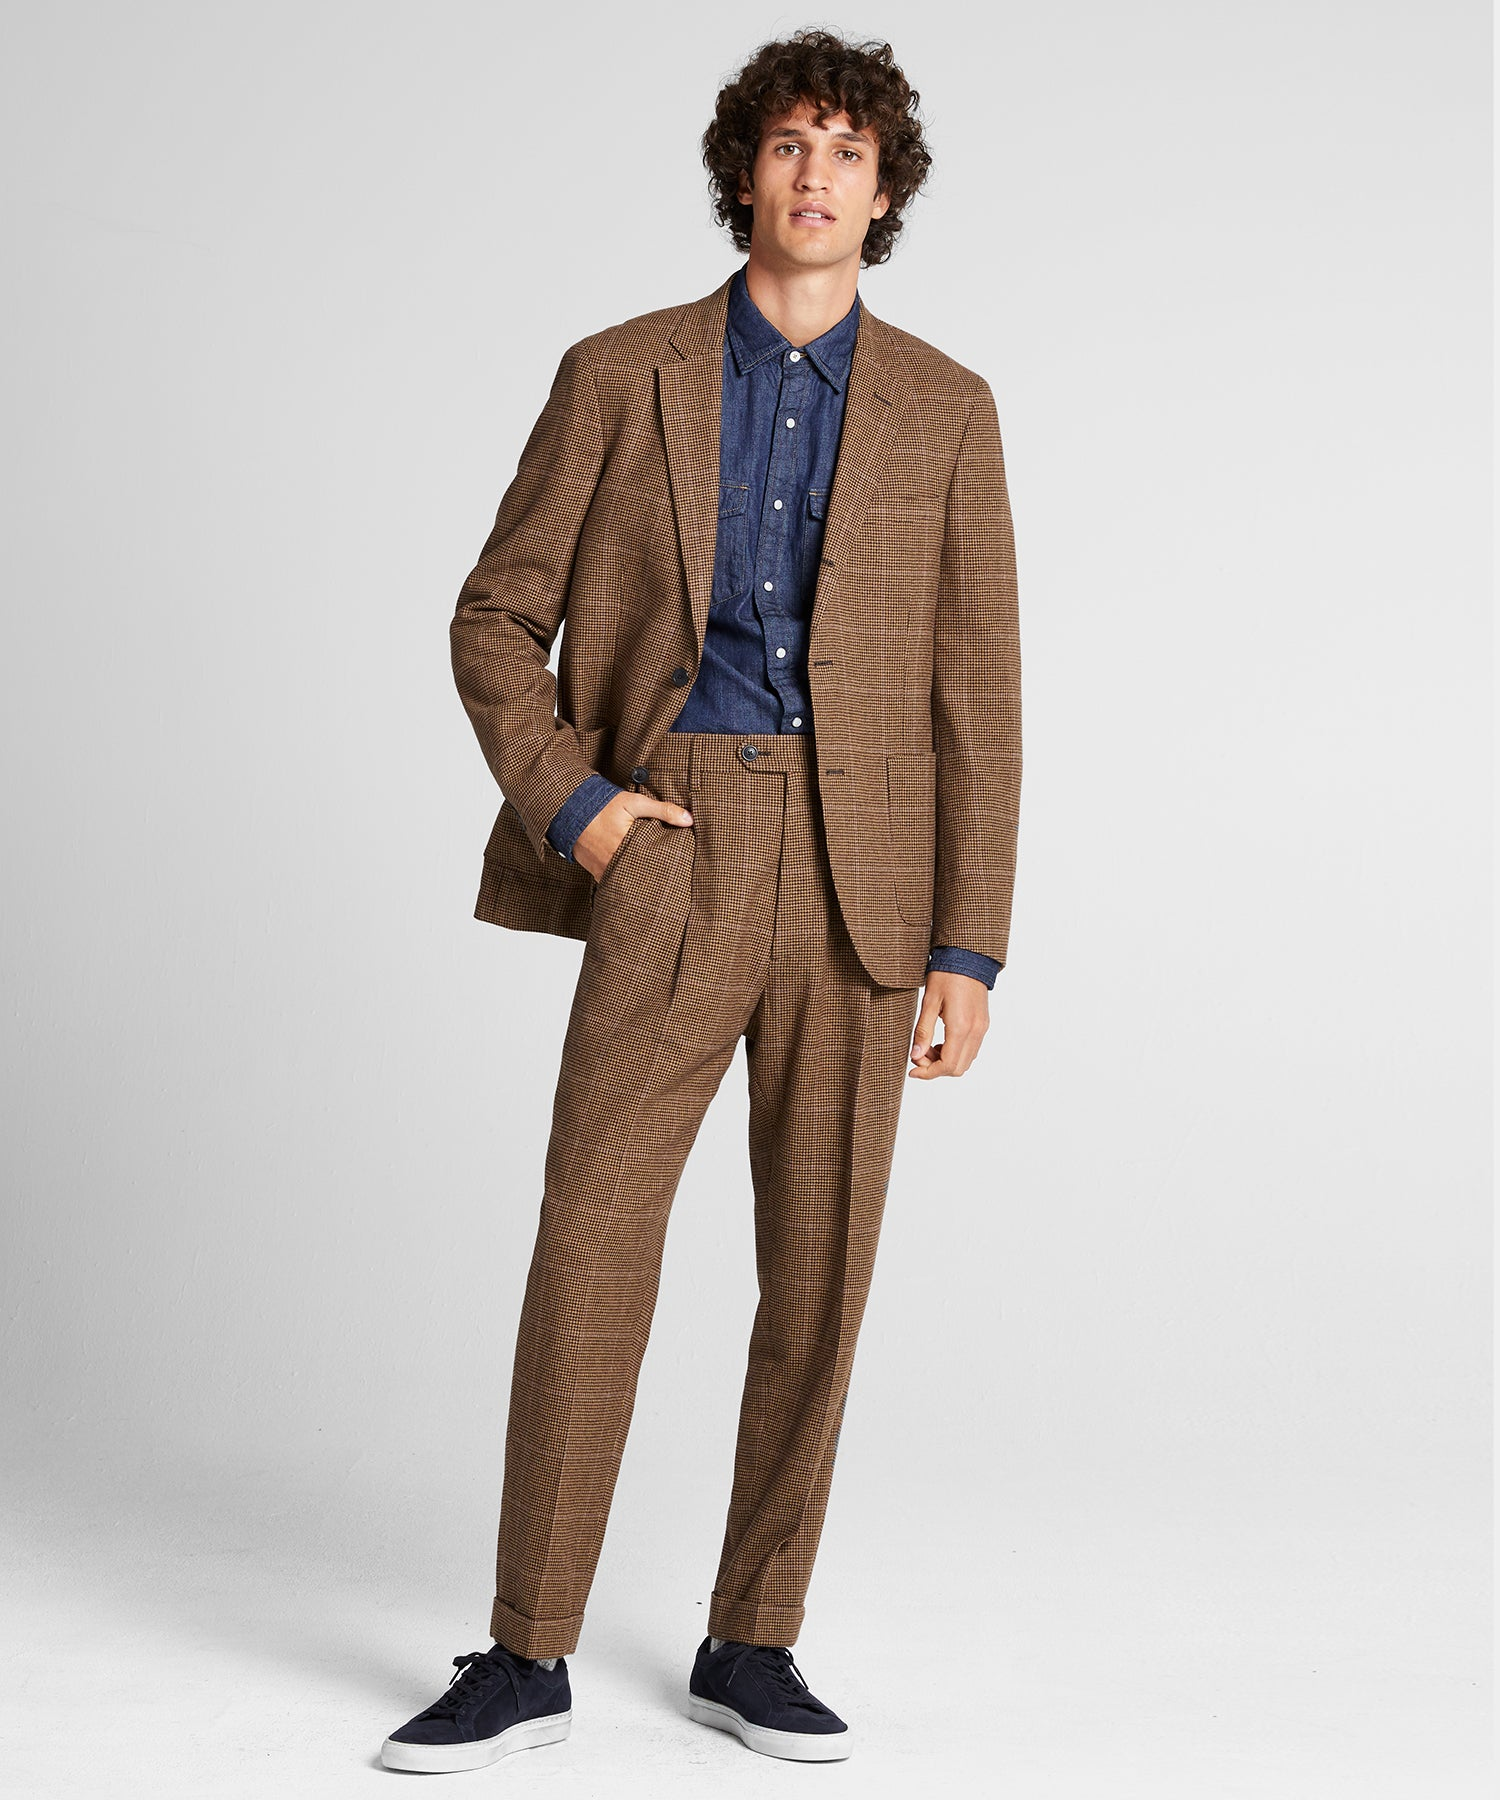 Wool Houndstooth Madison Traveler Suit in Brown